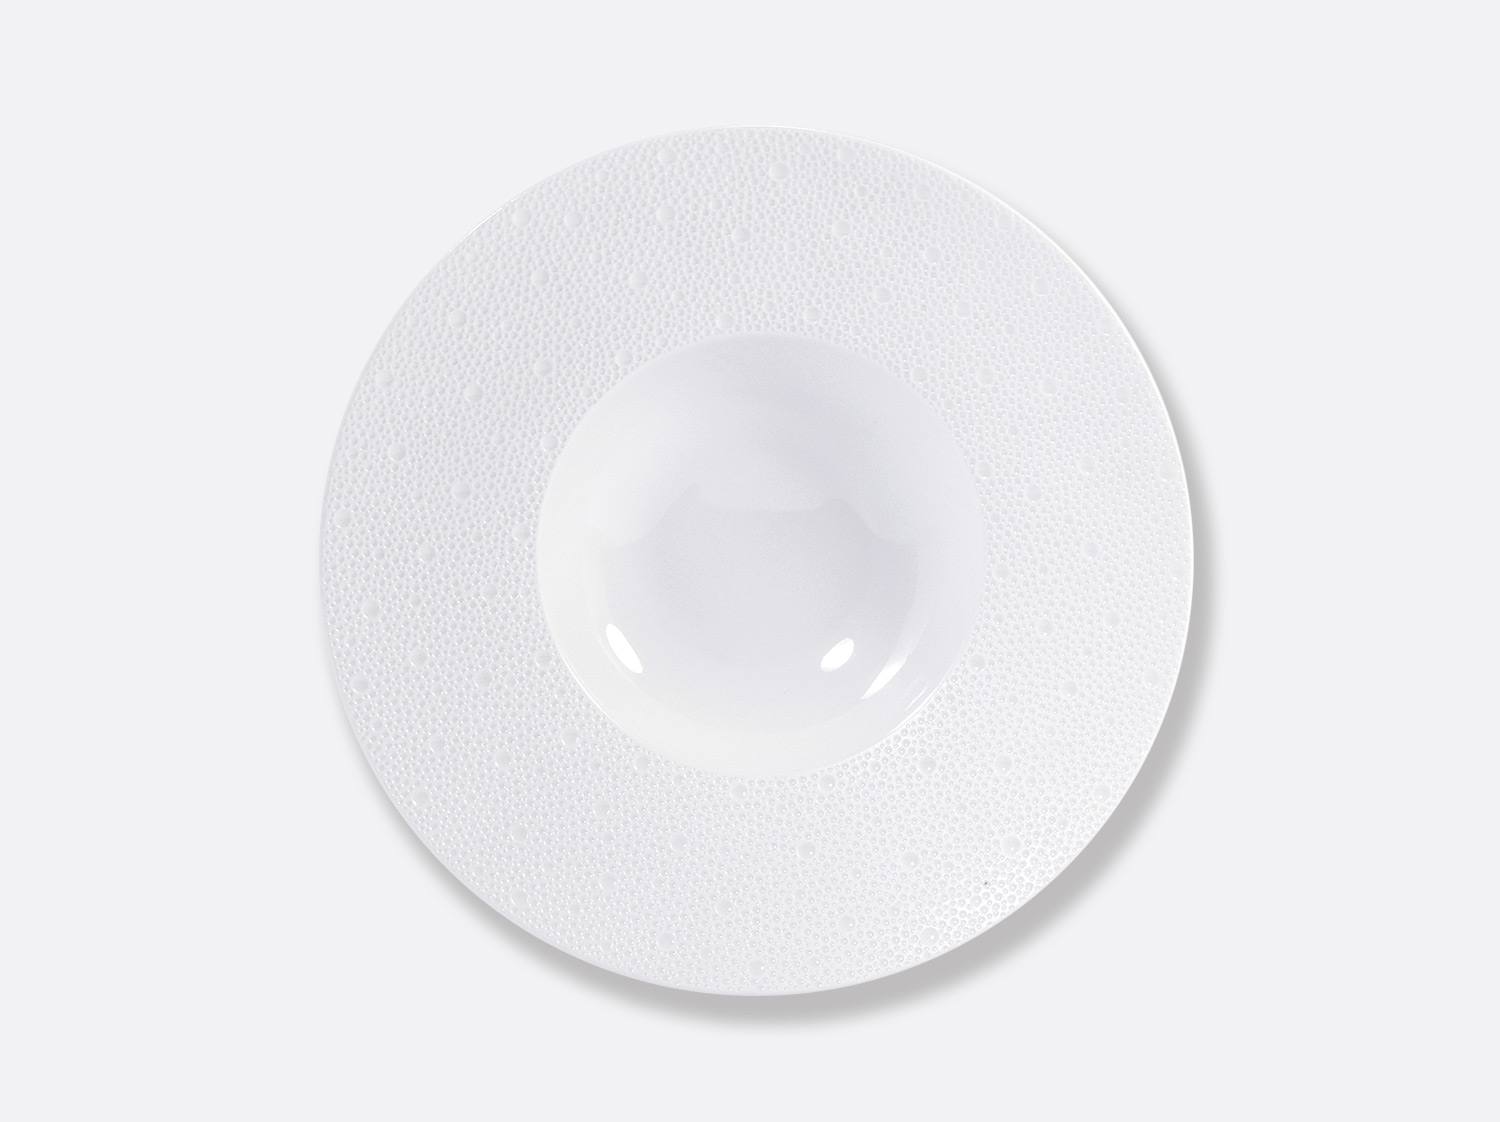 Assiette Creuse à aile large 27 cm en porcelaine de la collection ECUME BLANC Bernardaud